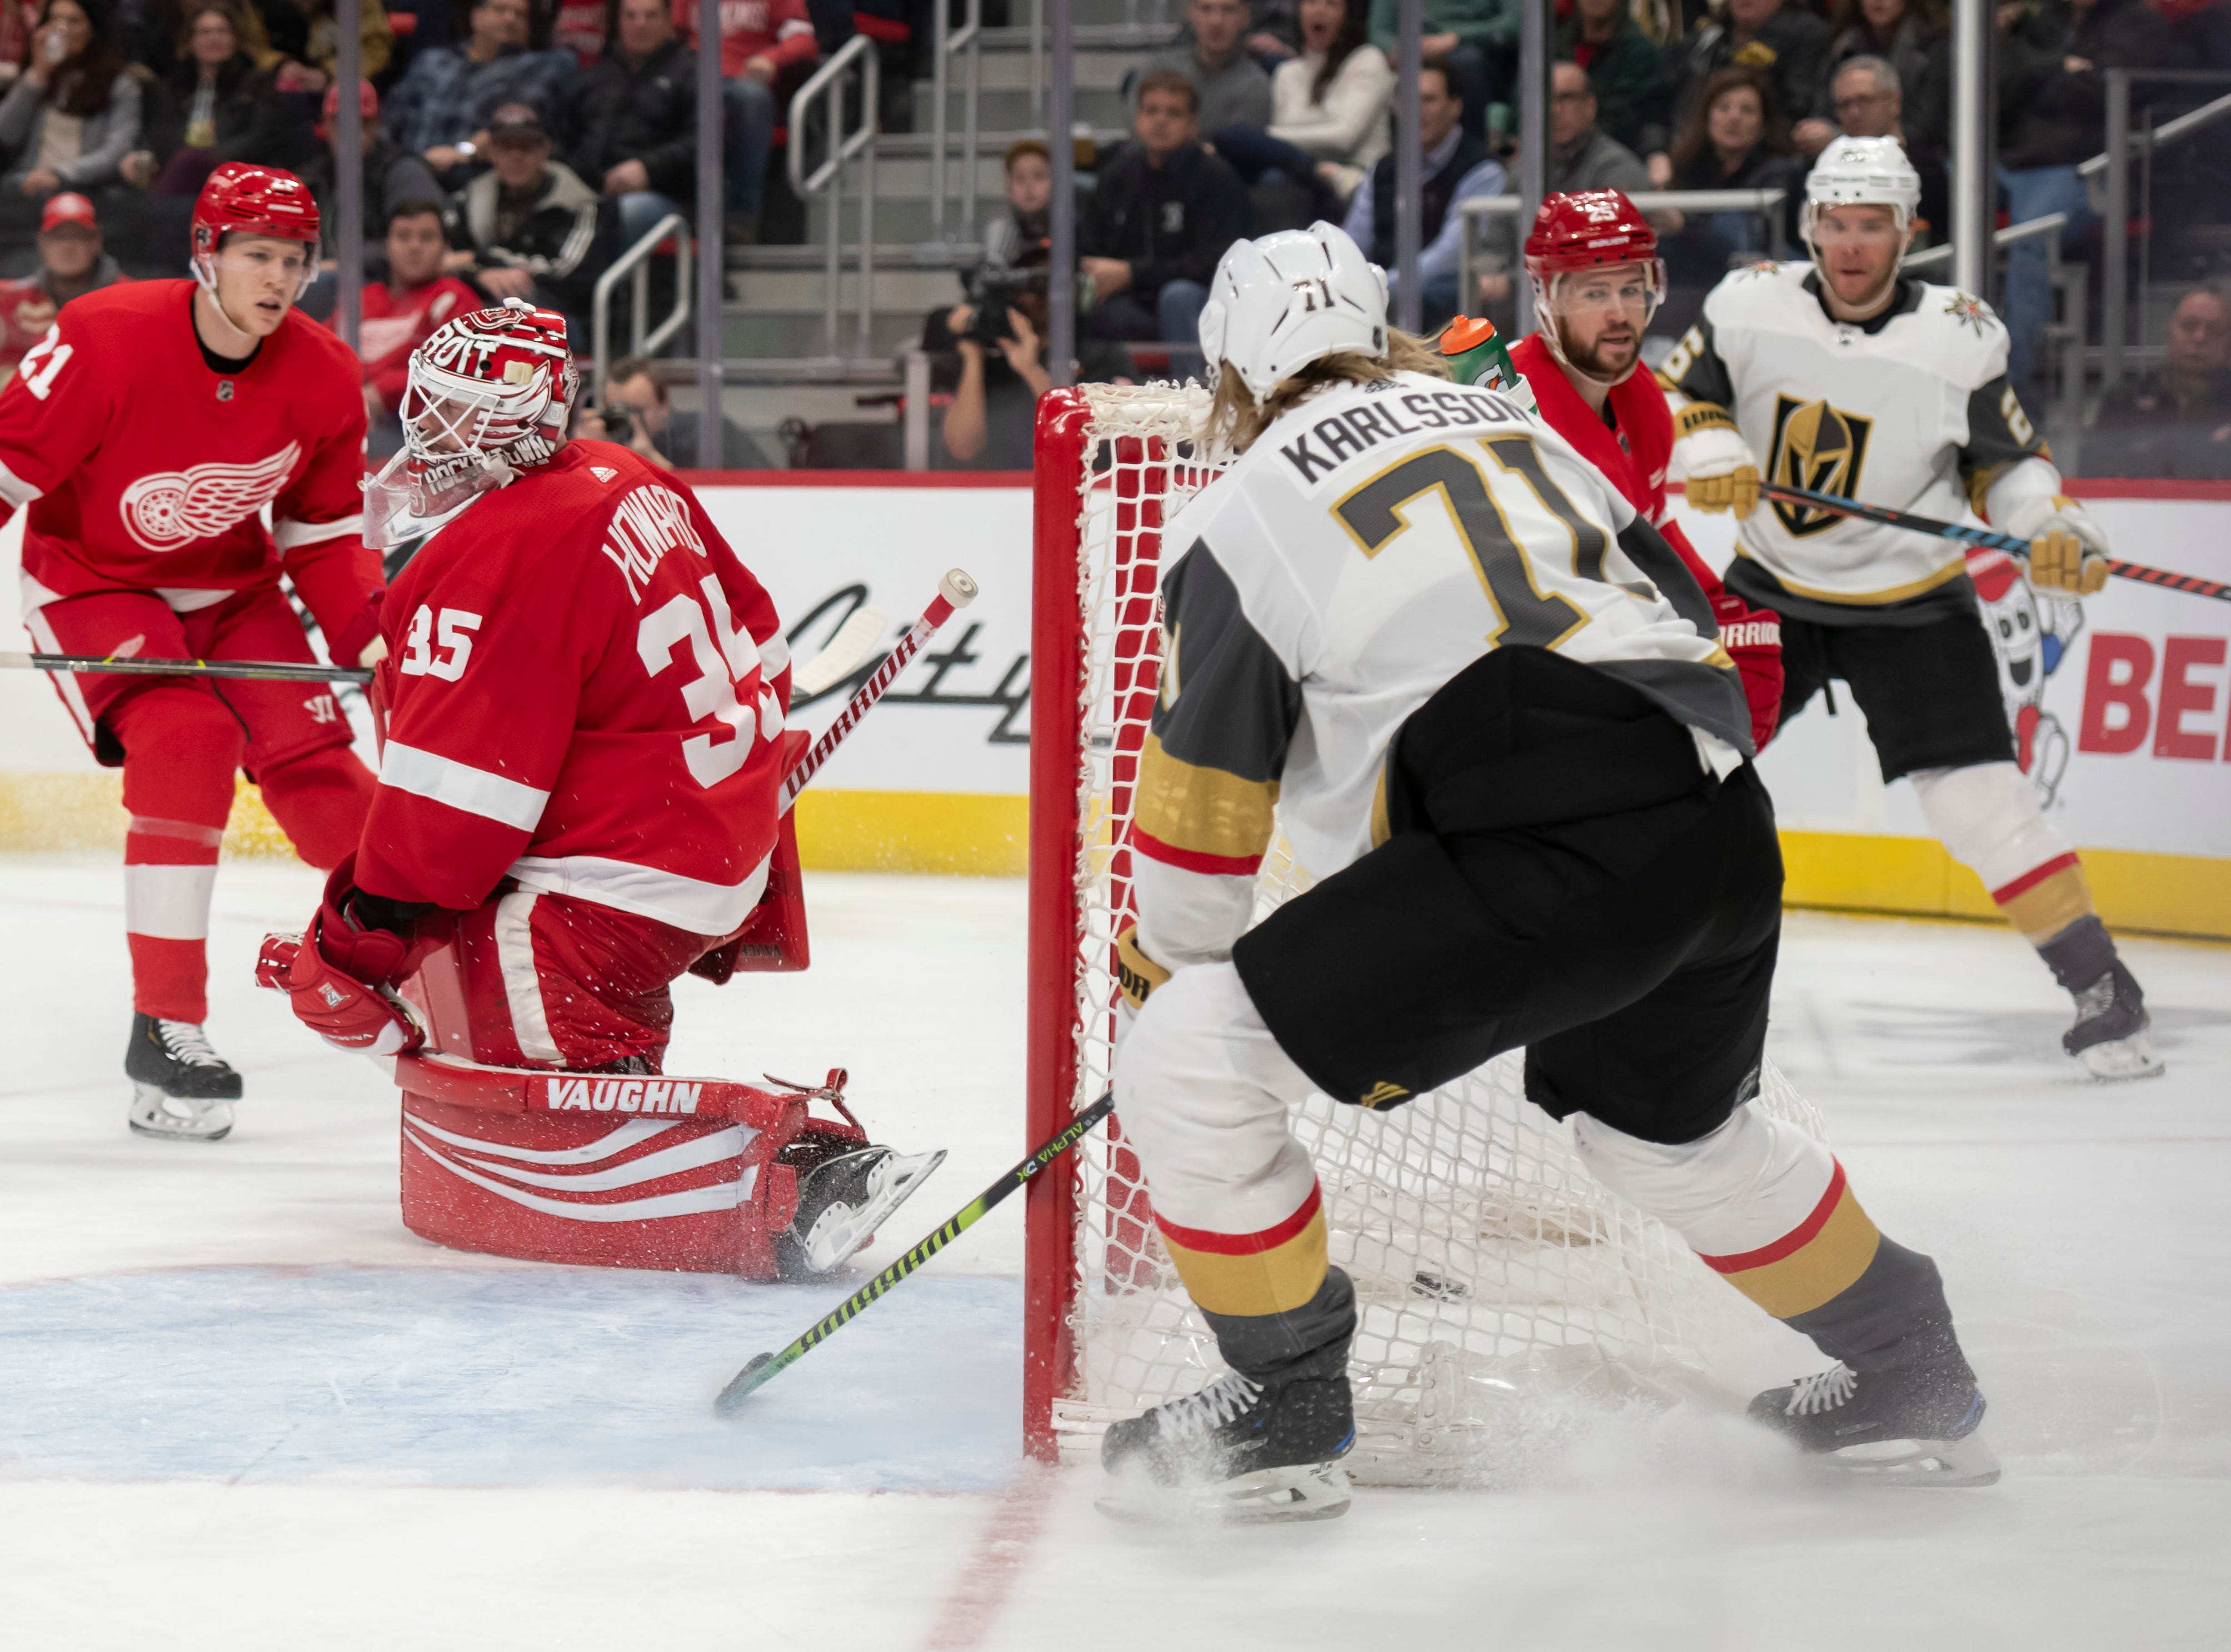 Vegas center William Karlsson slips the puck past Detroit goaltender Jimmy Howard for a goal in the second period.